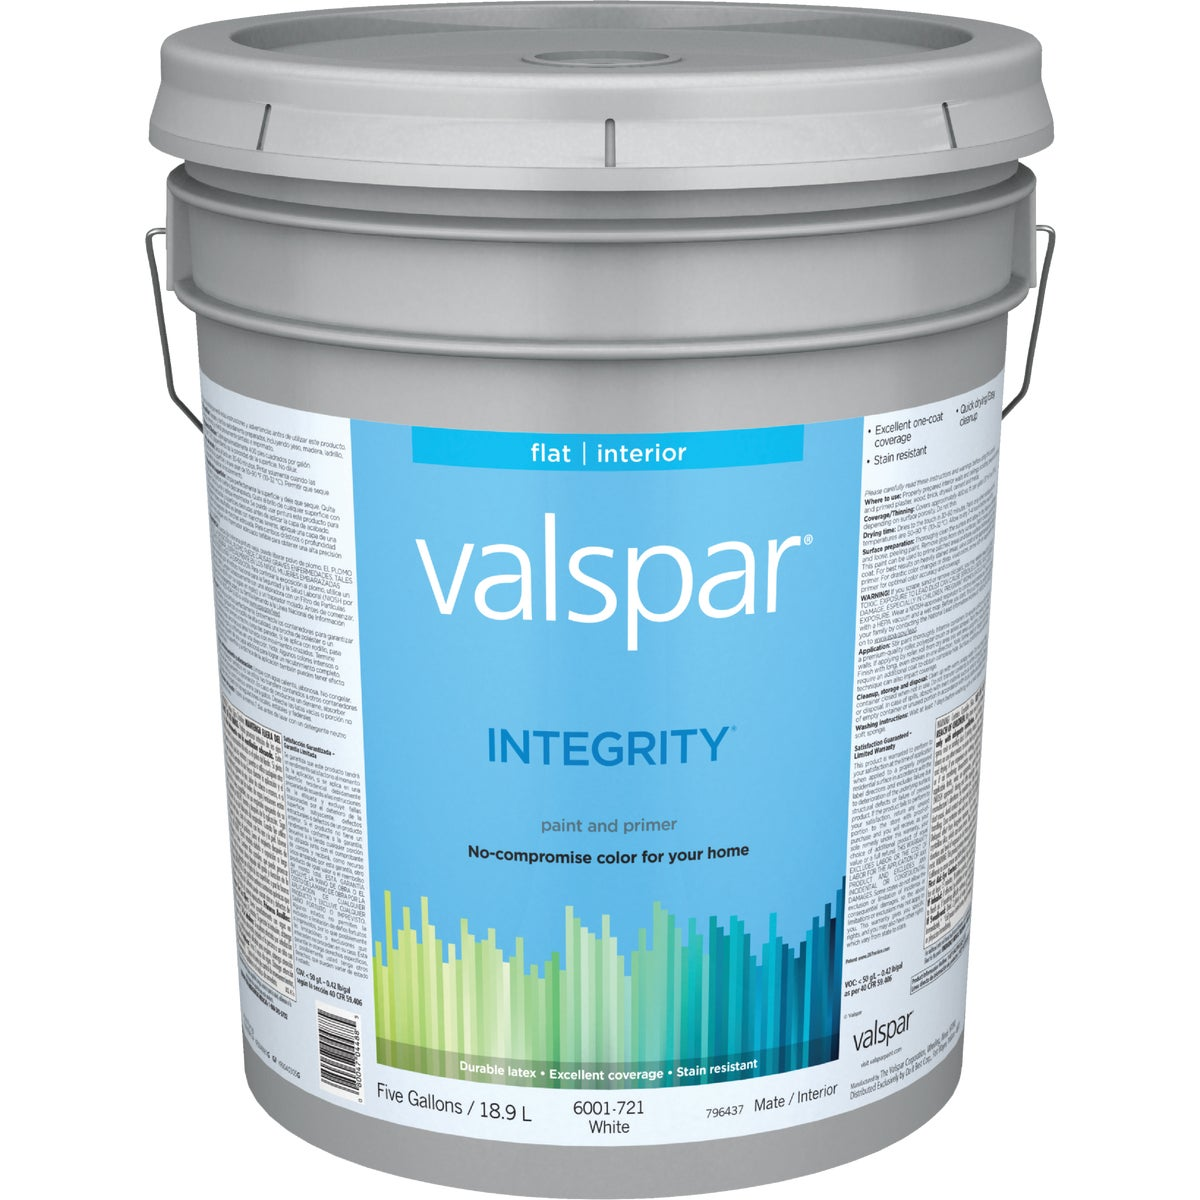 INT FLAT WHITE PAINT - 004.6001721.008 by Valspar Corp